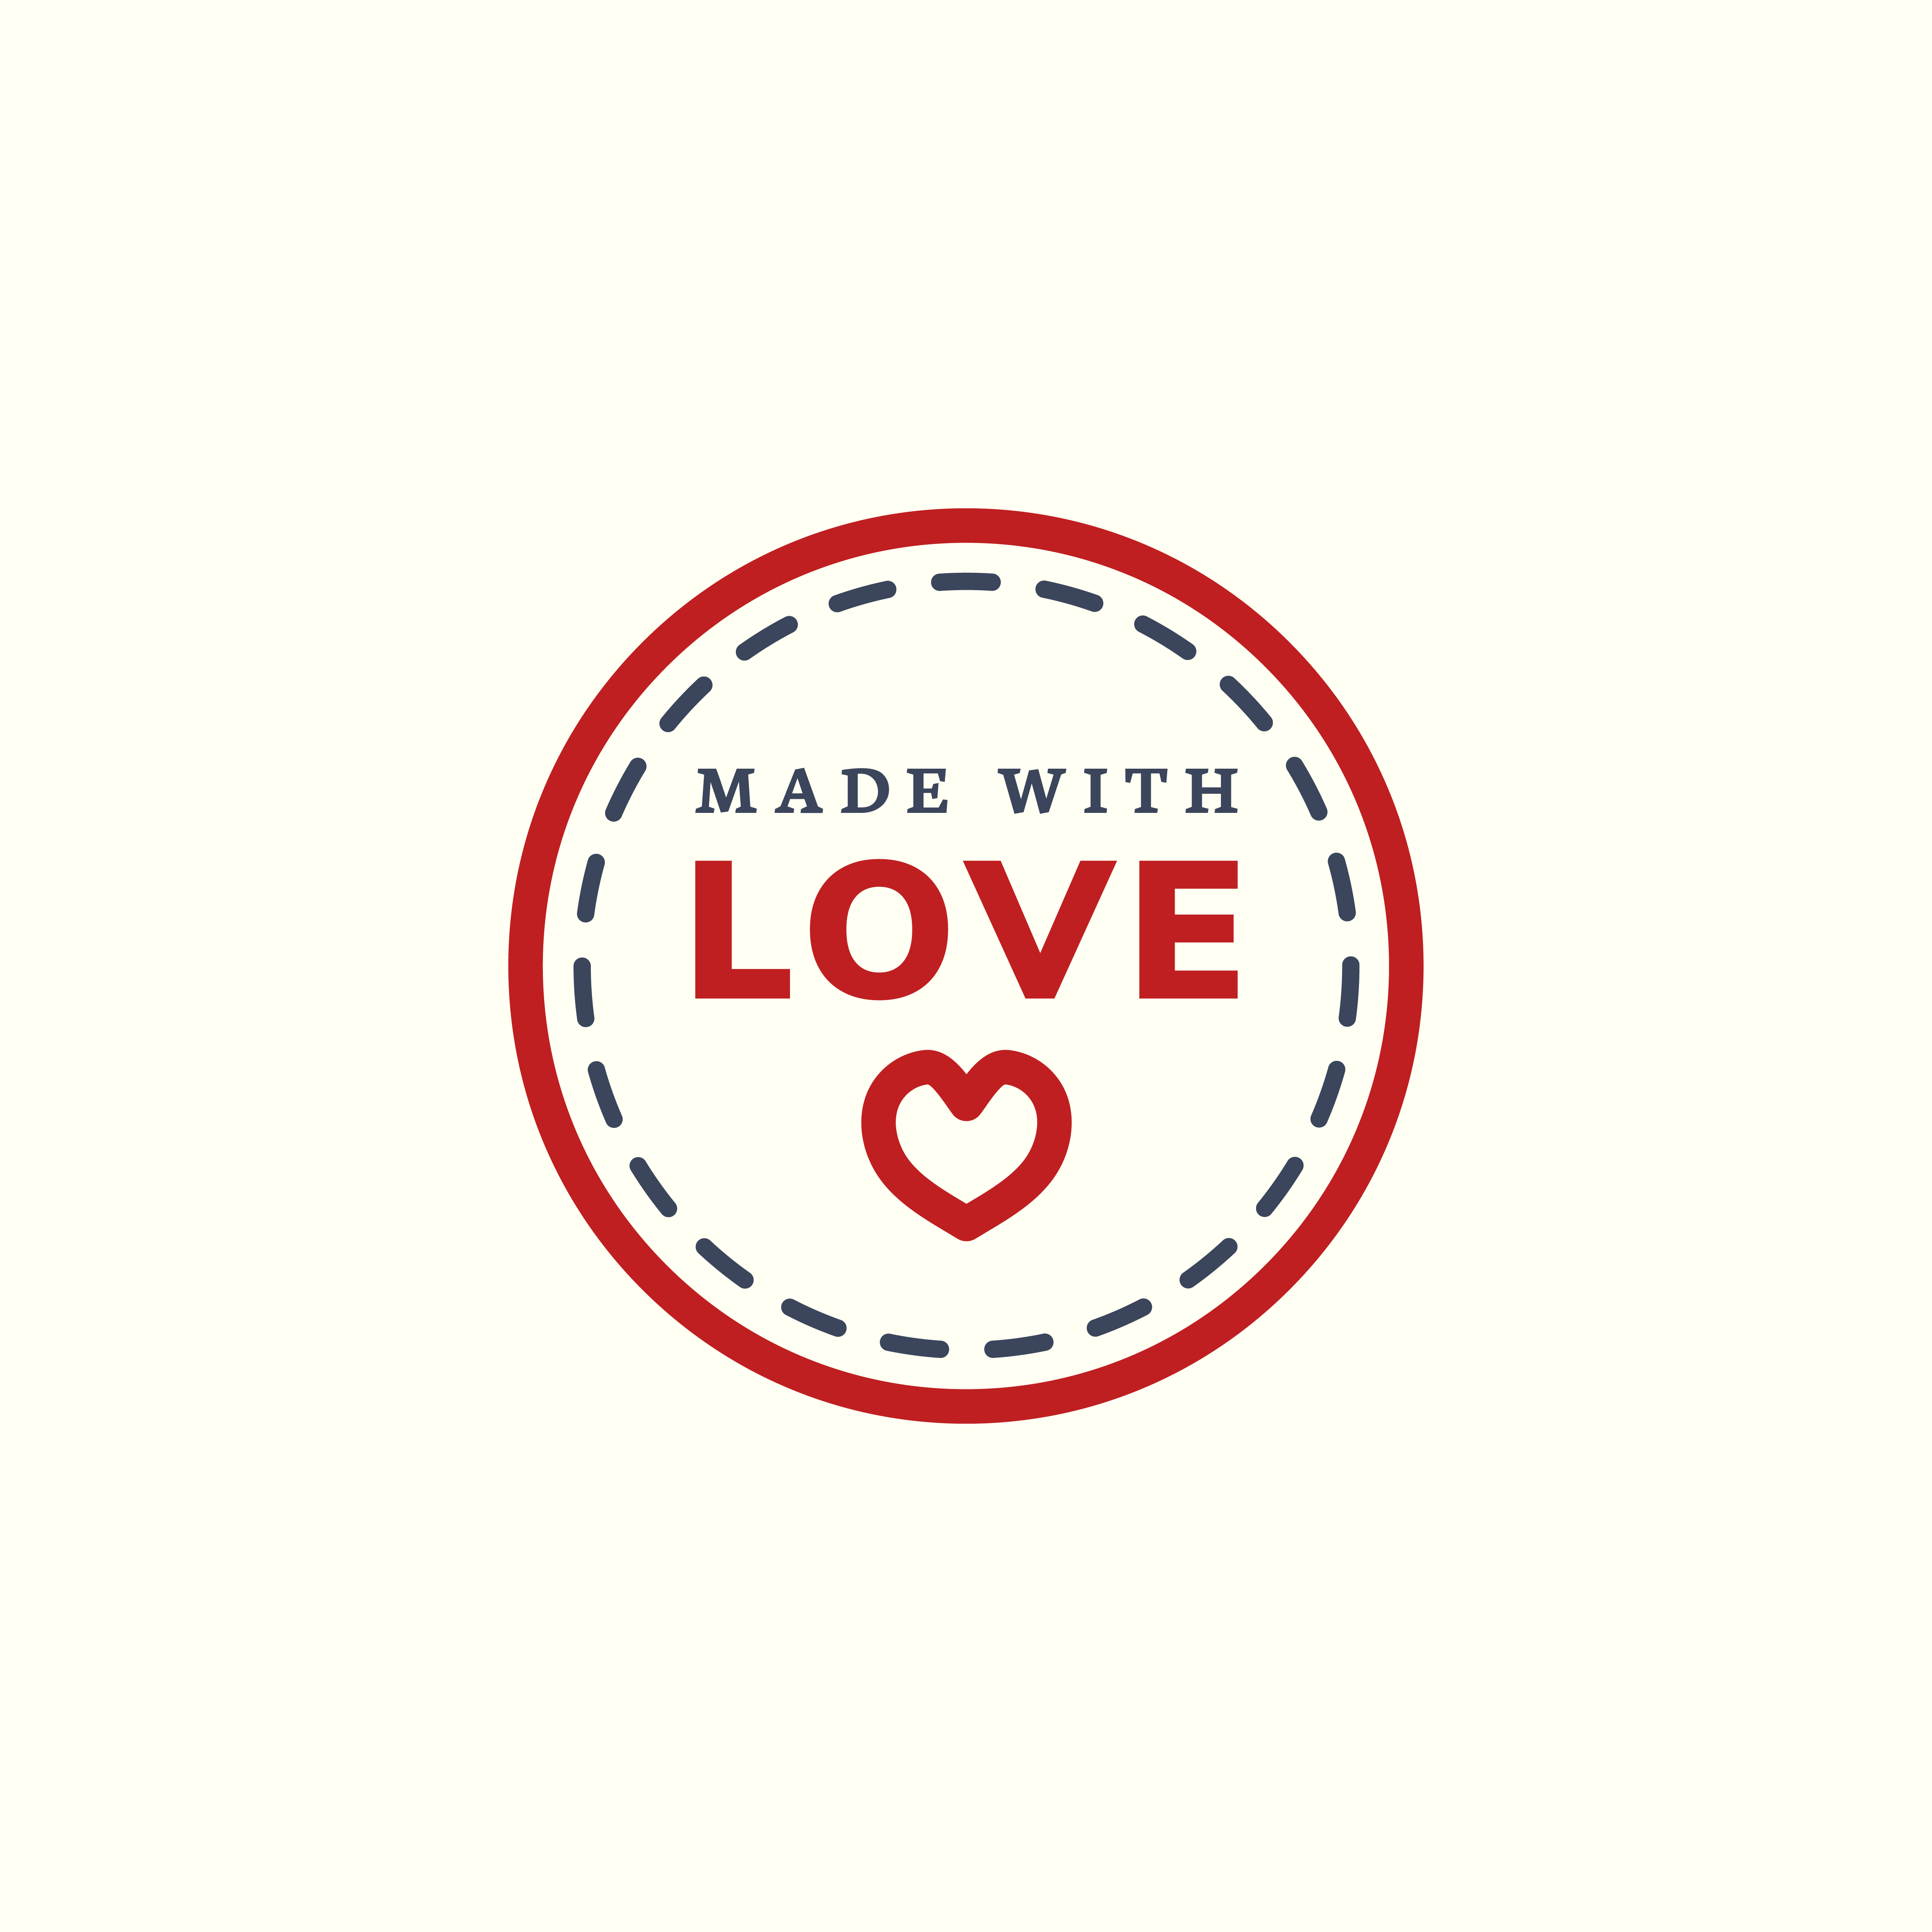 Download Made with love icon illustration - Download Free Vectors ...